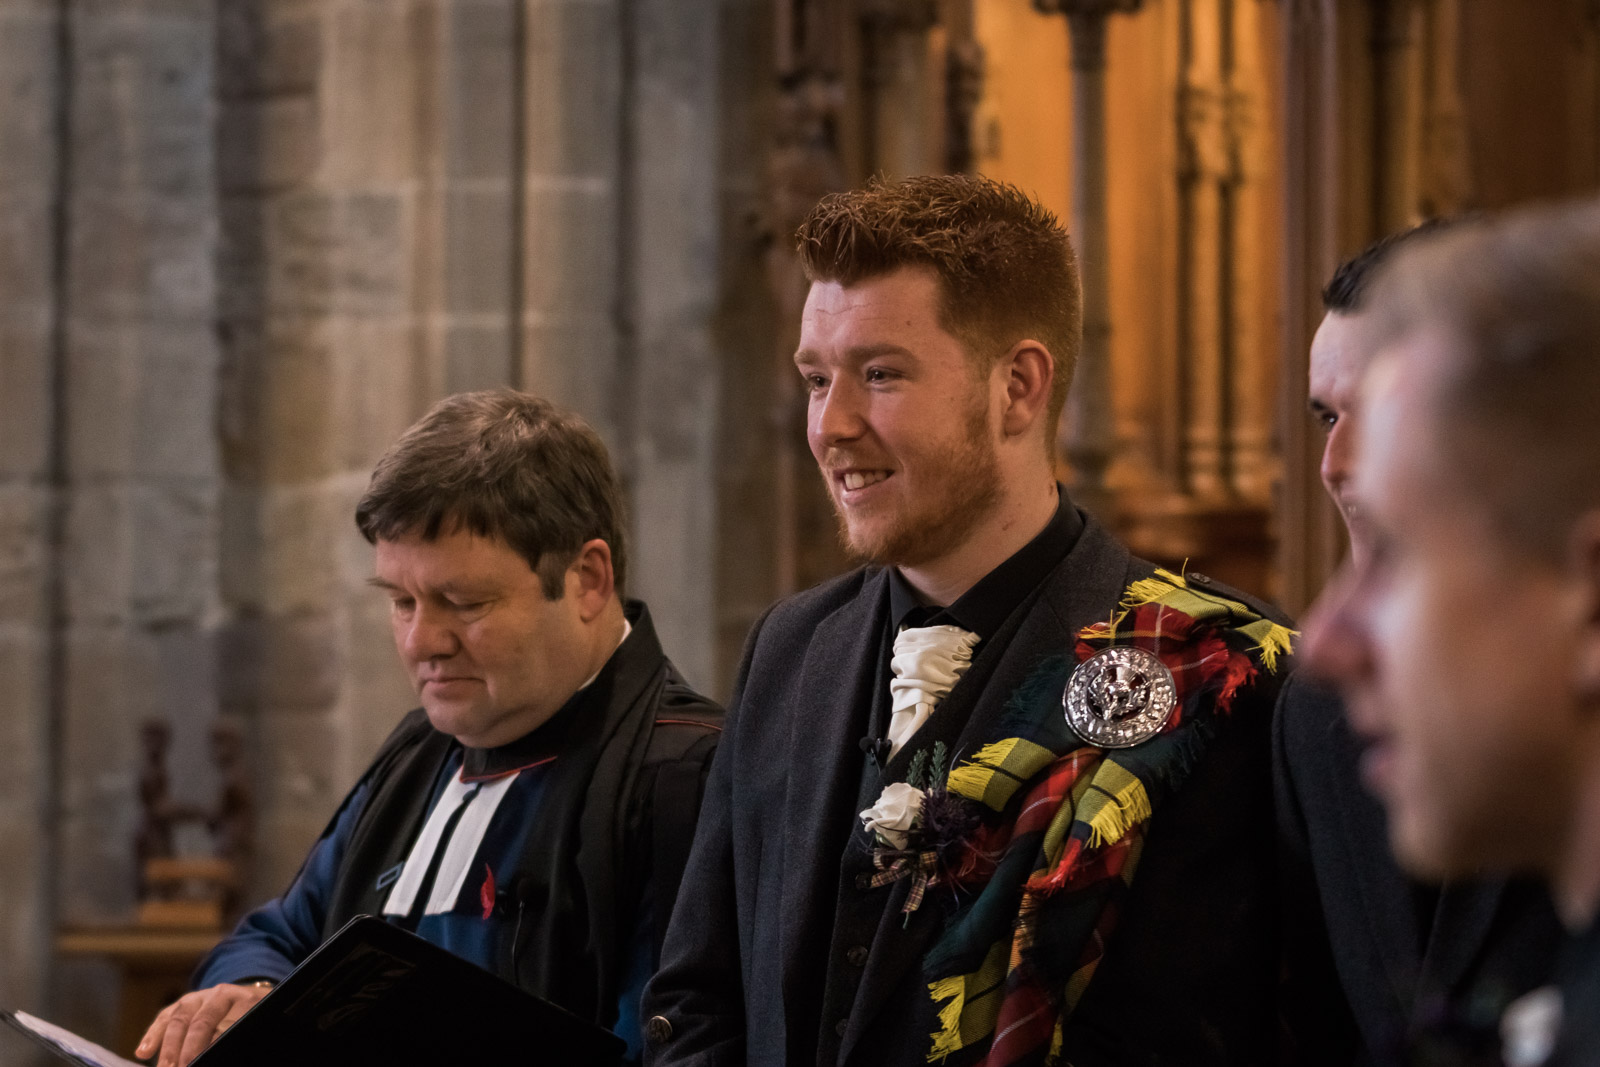 dunblane-hydro-cathedral-wedding-stirlingshire-dearlyphotography (46 of 108).jpg